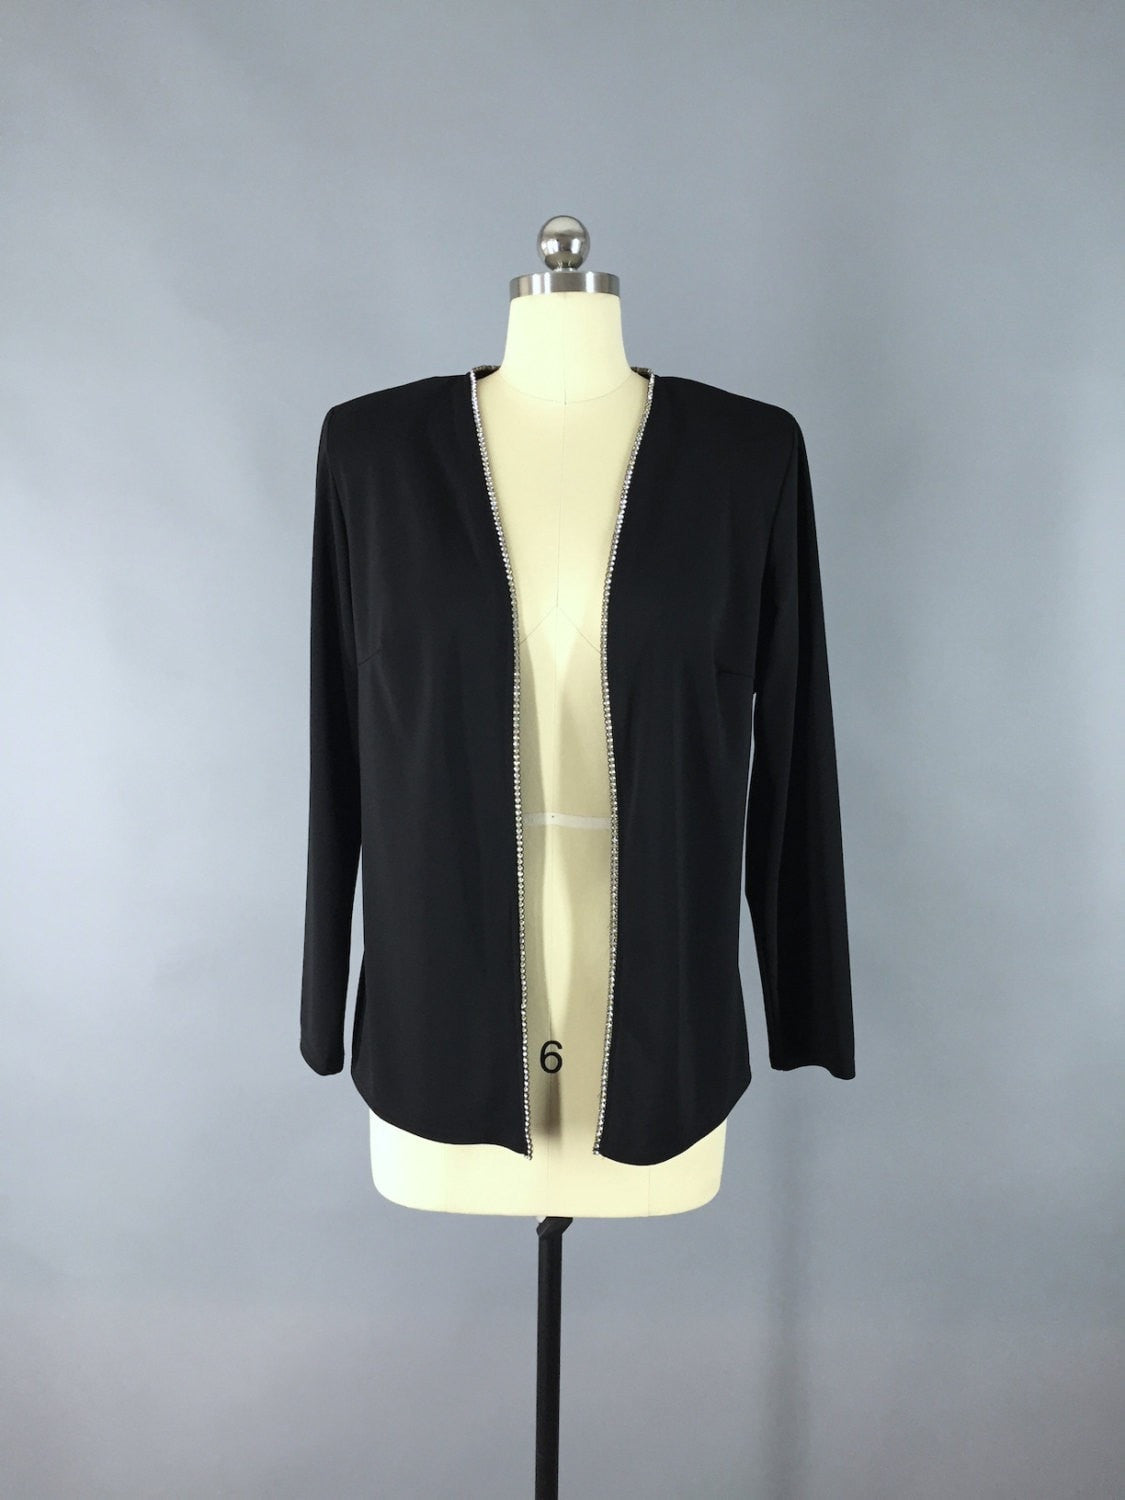 Vintage 1980s Black Crepe and Rhinestones Cardigan Jacket Outerwear ThisBlueBird - Sale